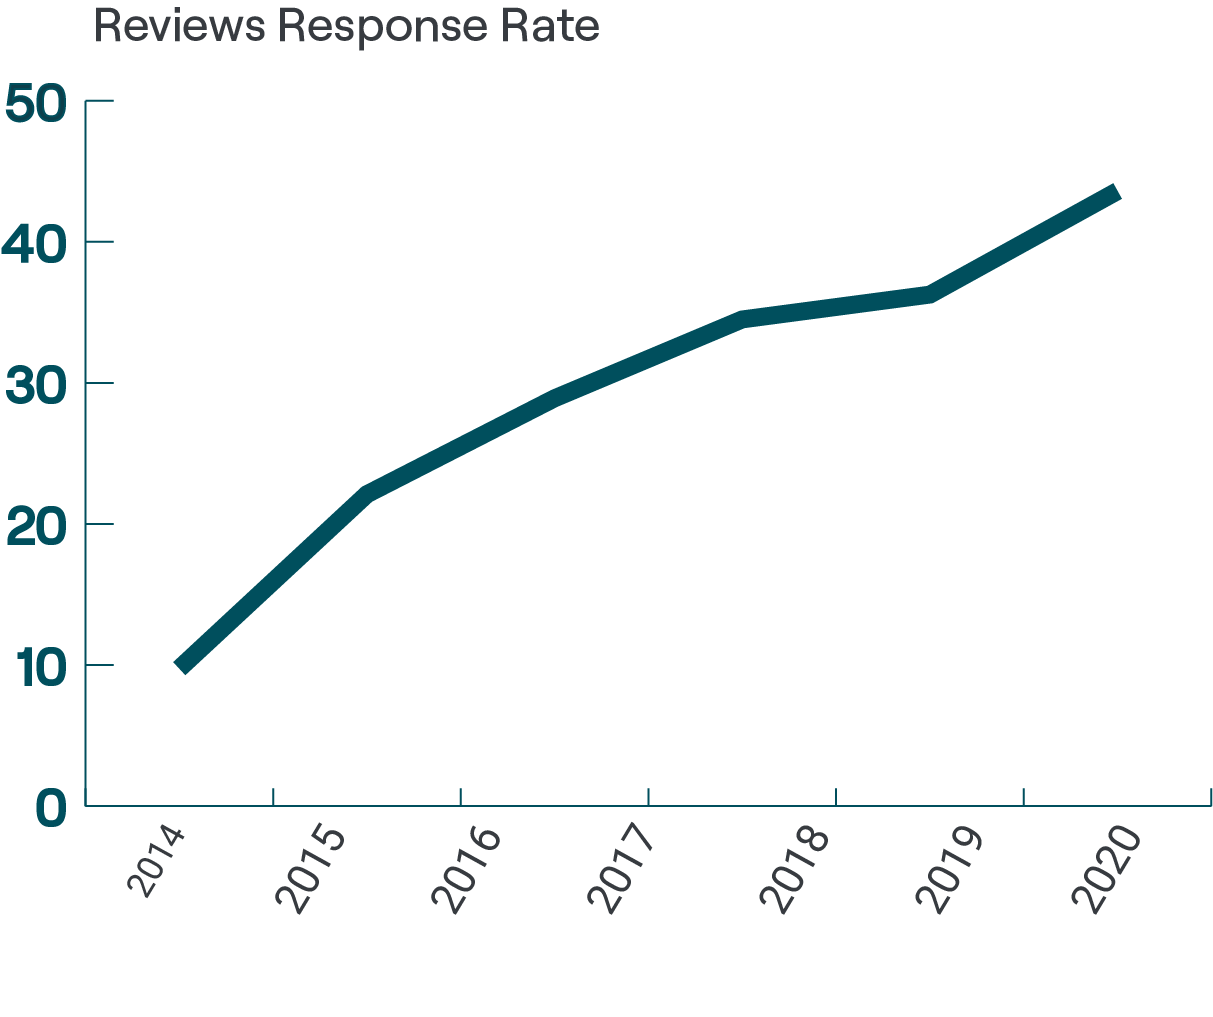 review response rate of UK care homes 2014-2020